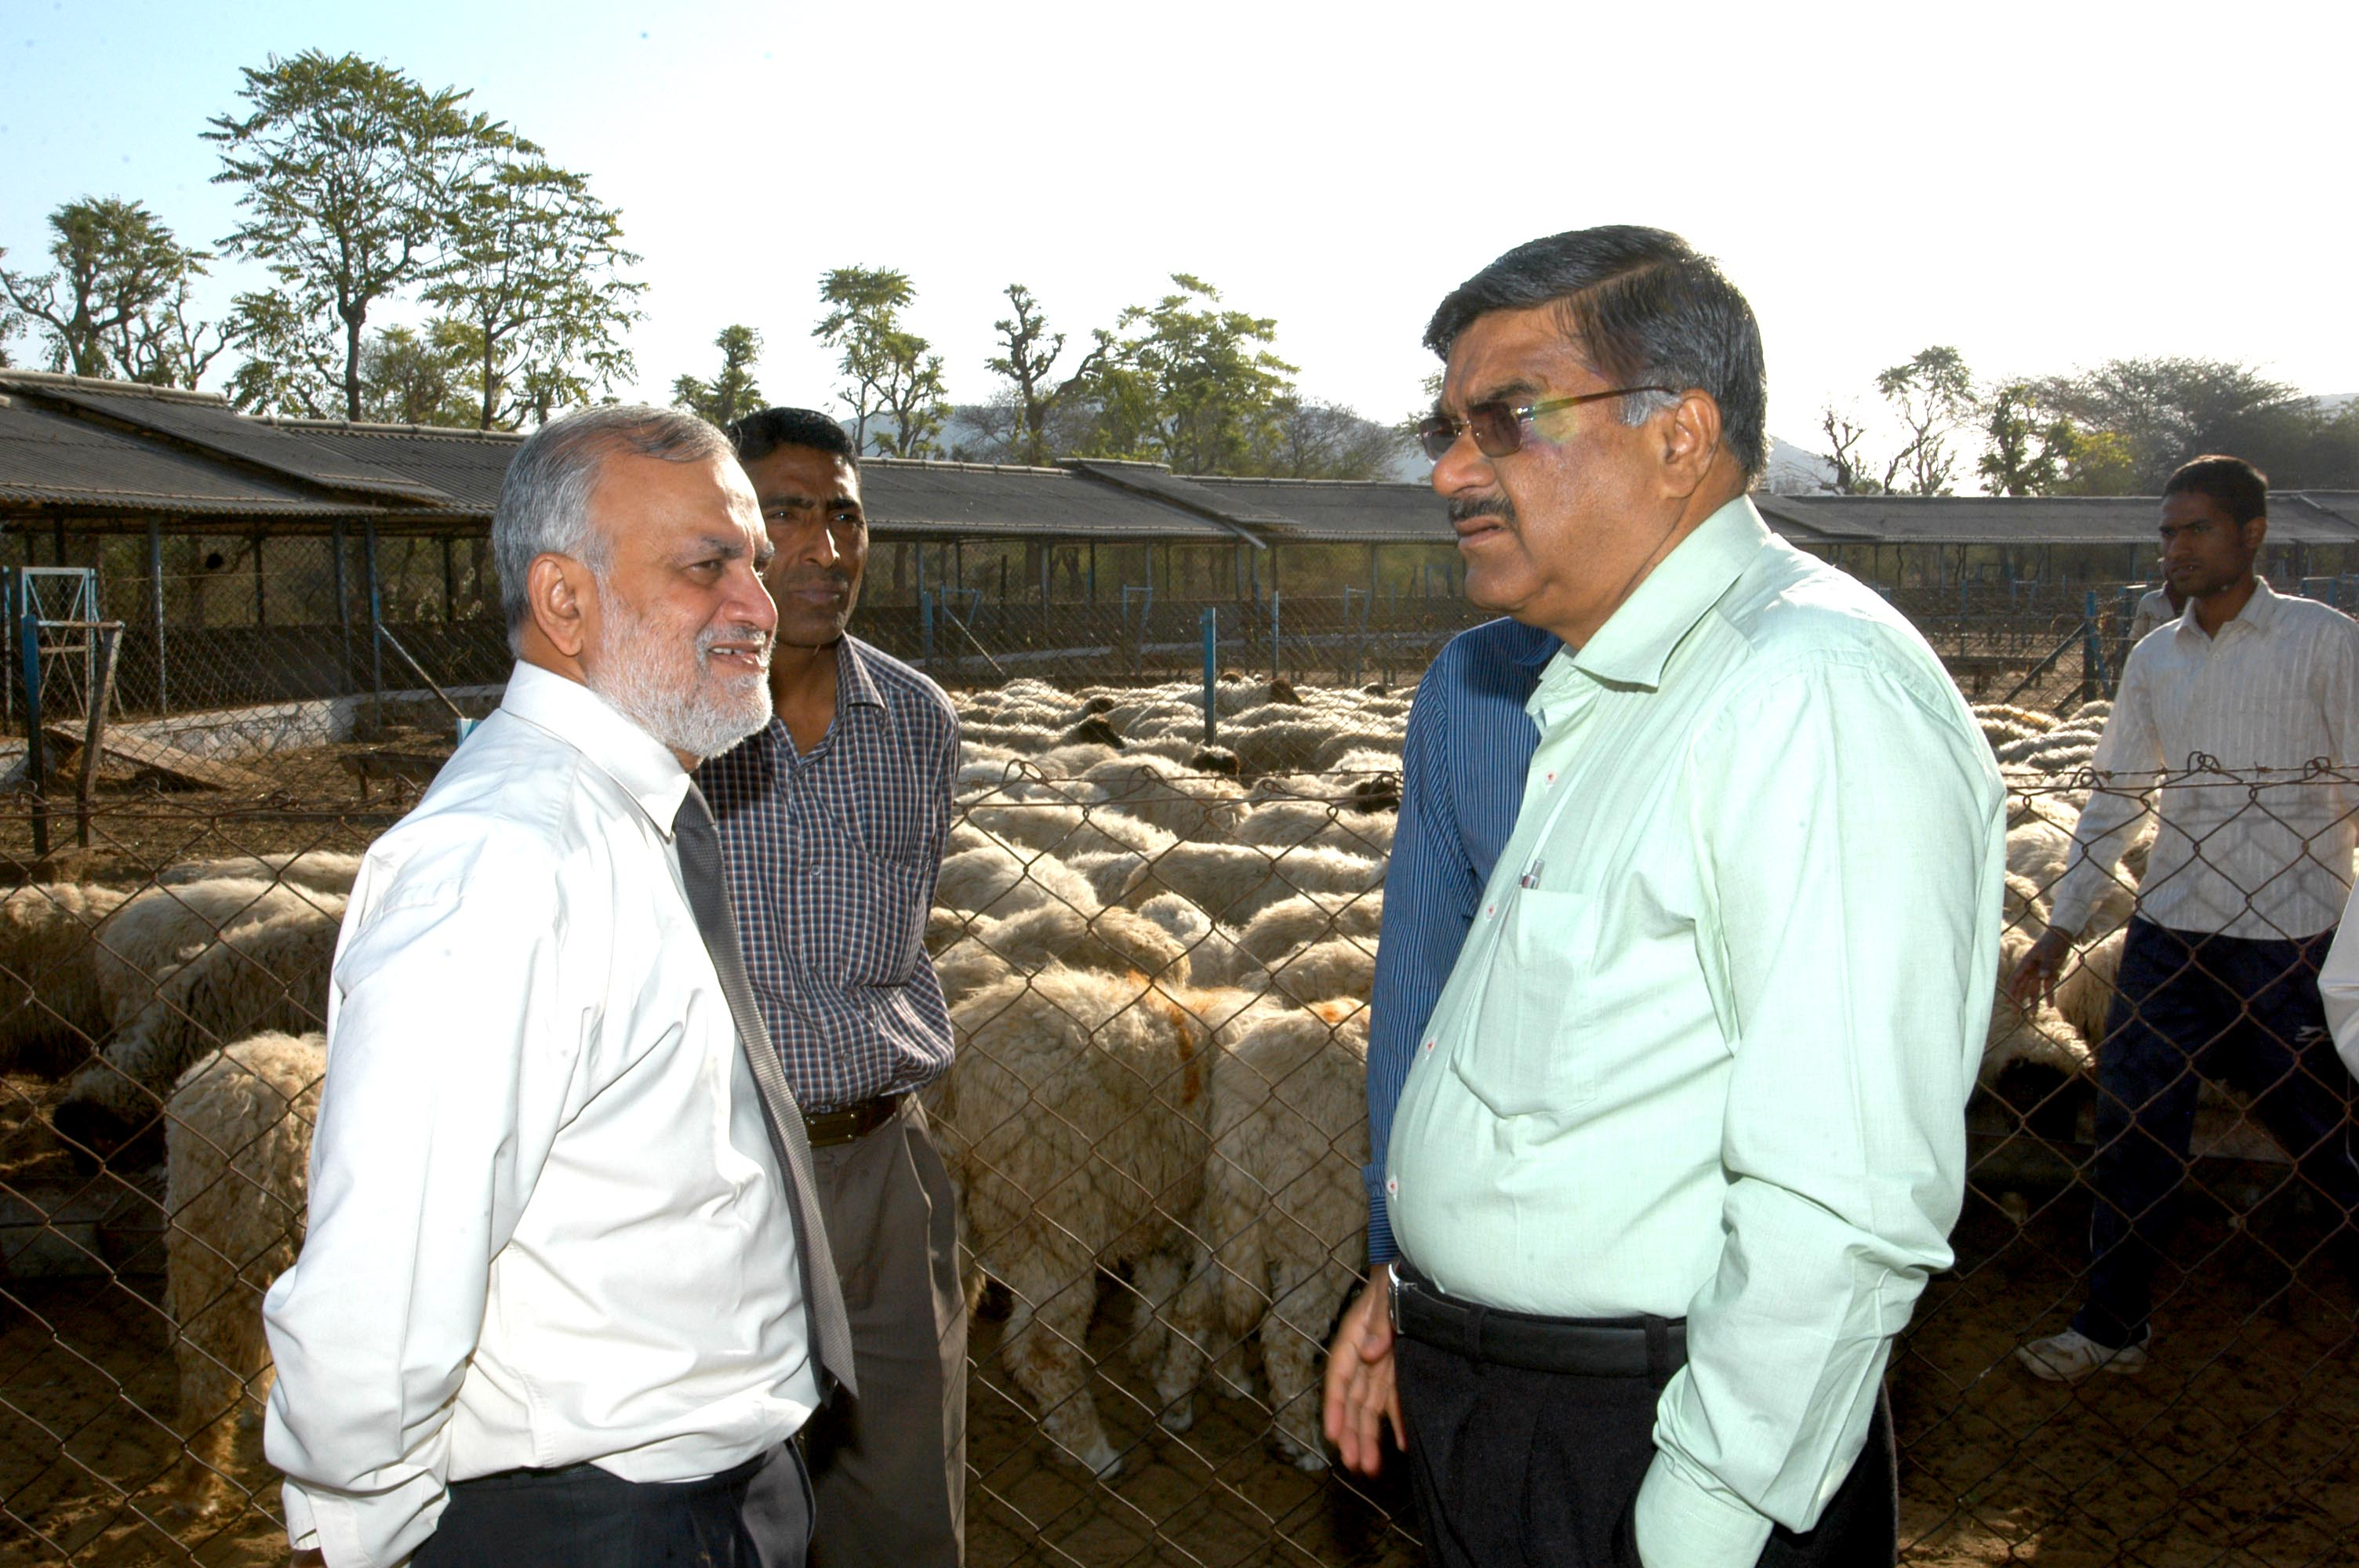 Discussion at Sheep Sector 18